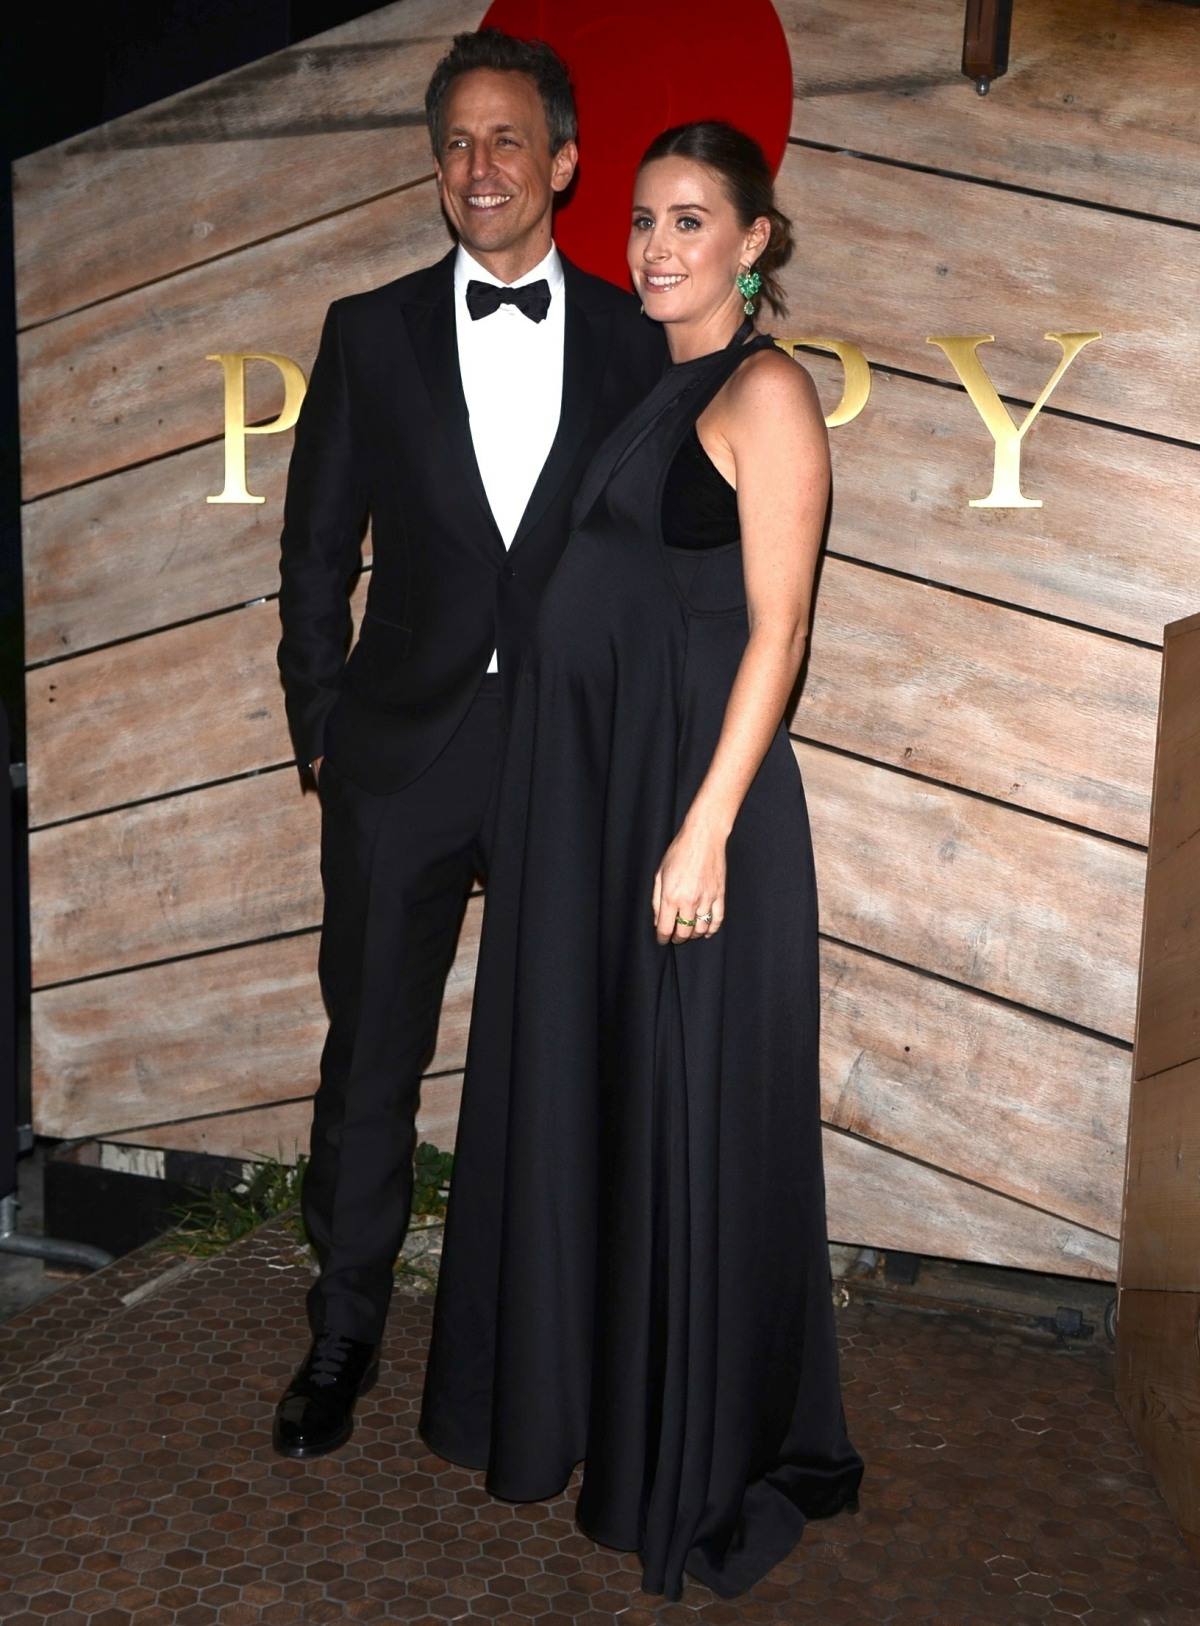 Seth Meyers and Pregnant Wife Alexi pose at Poppy for a Golden Globes Afterparty